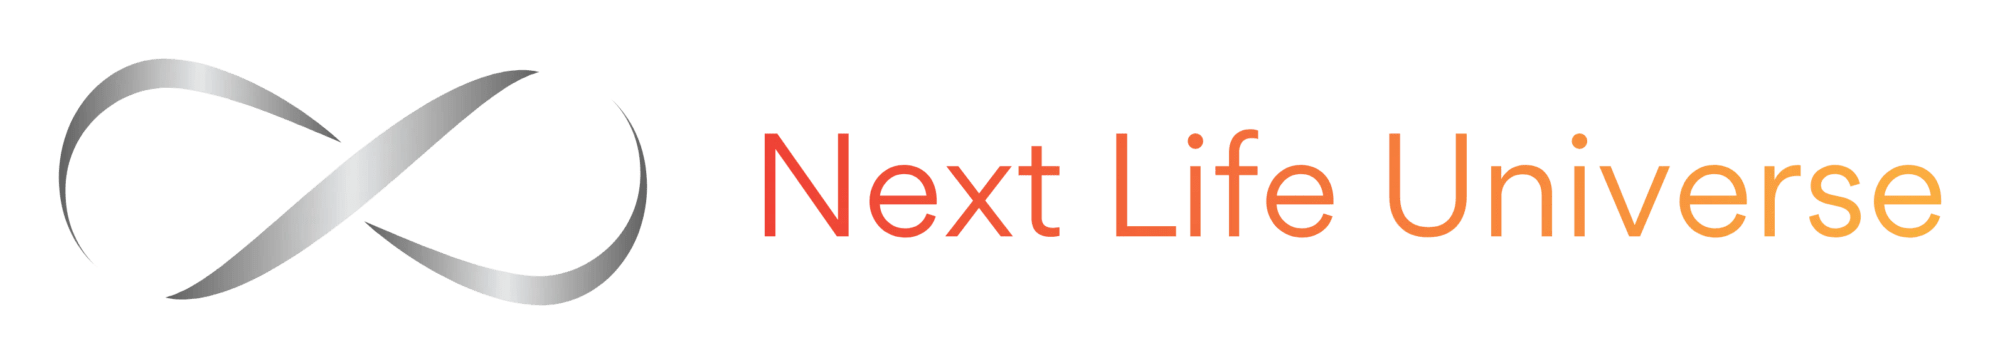 Next Life Universe   The Official Website